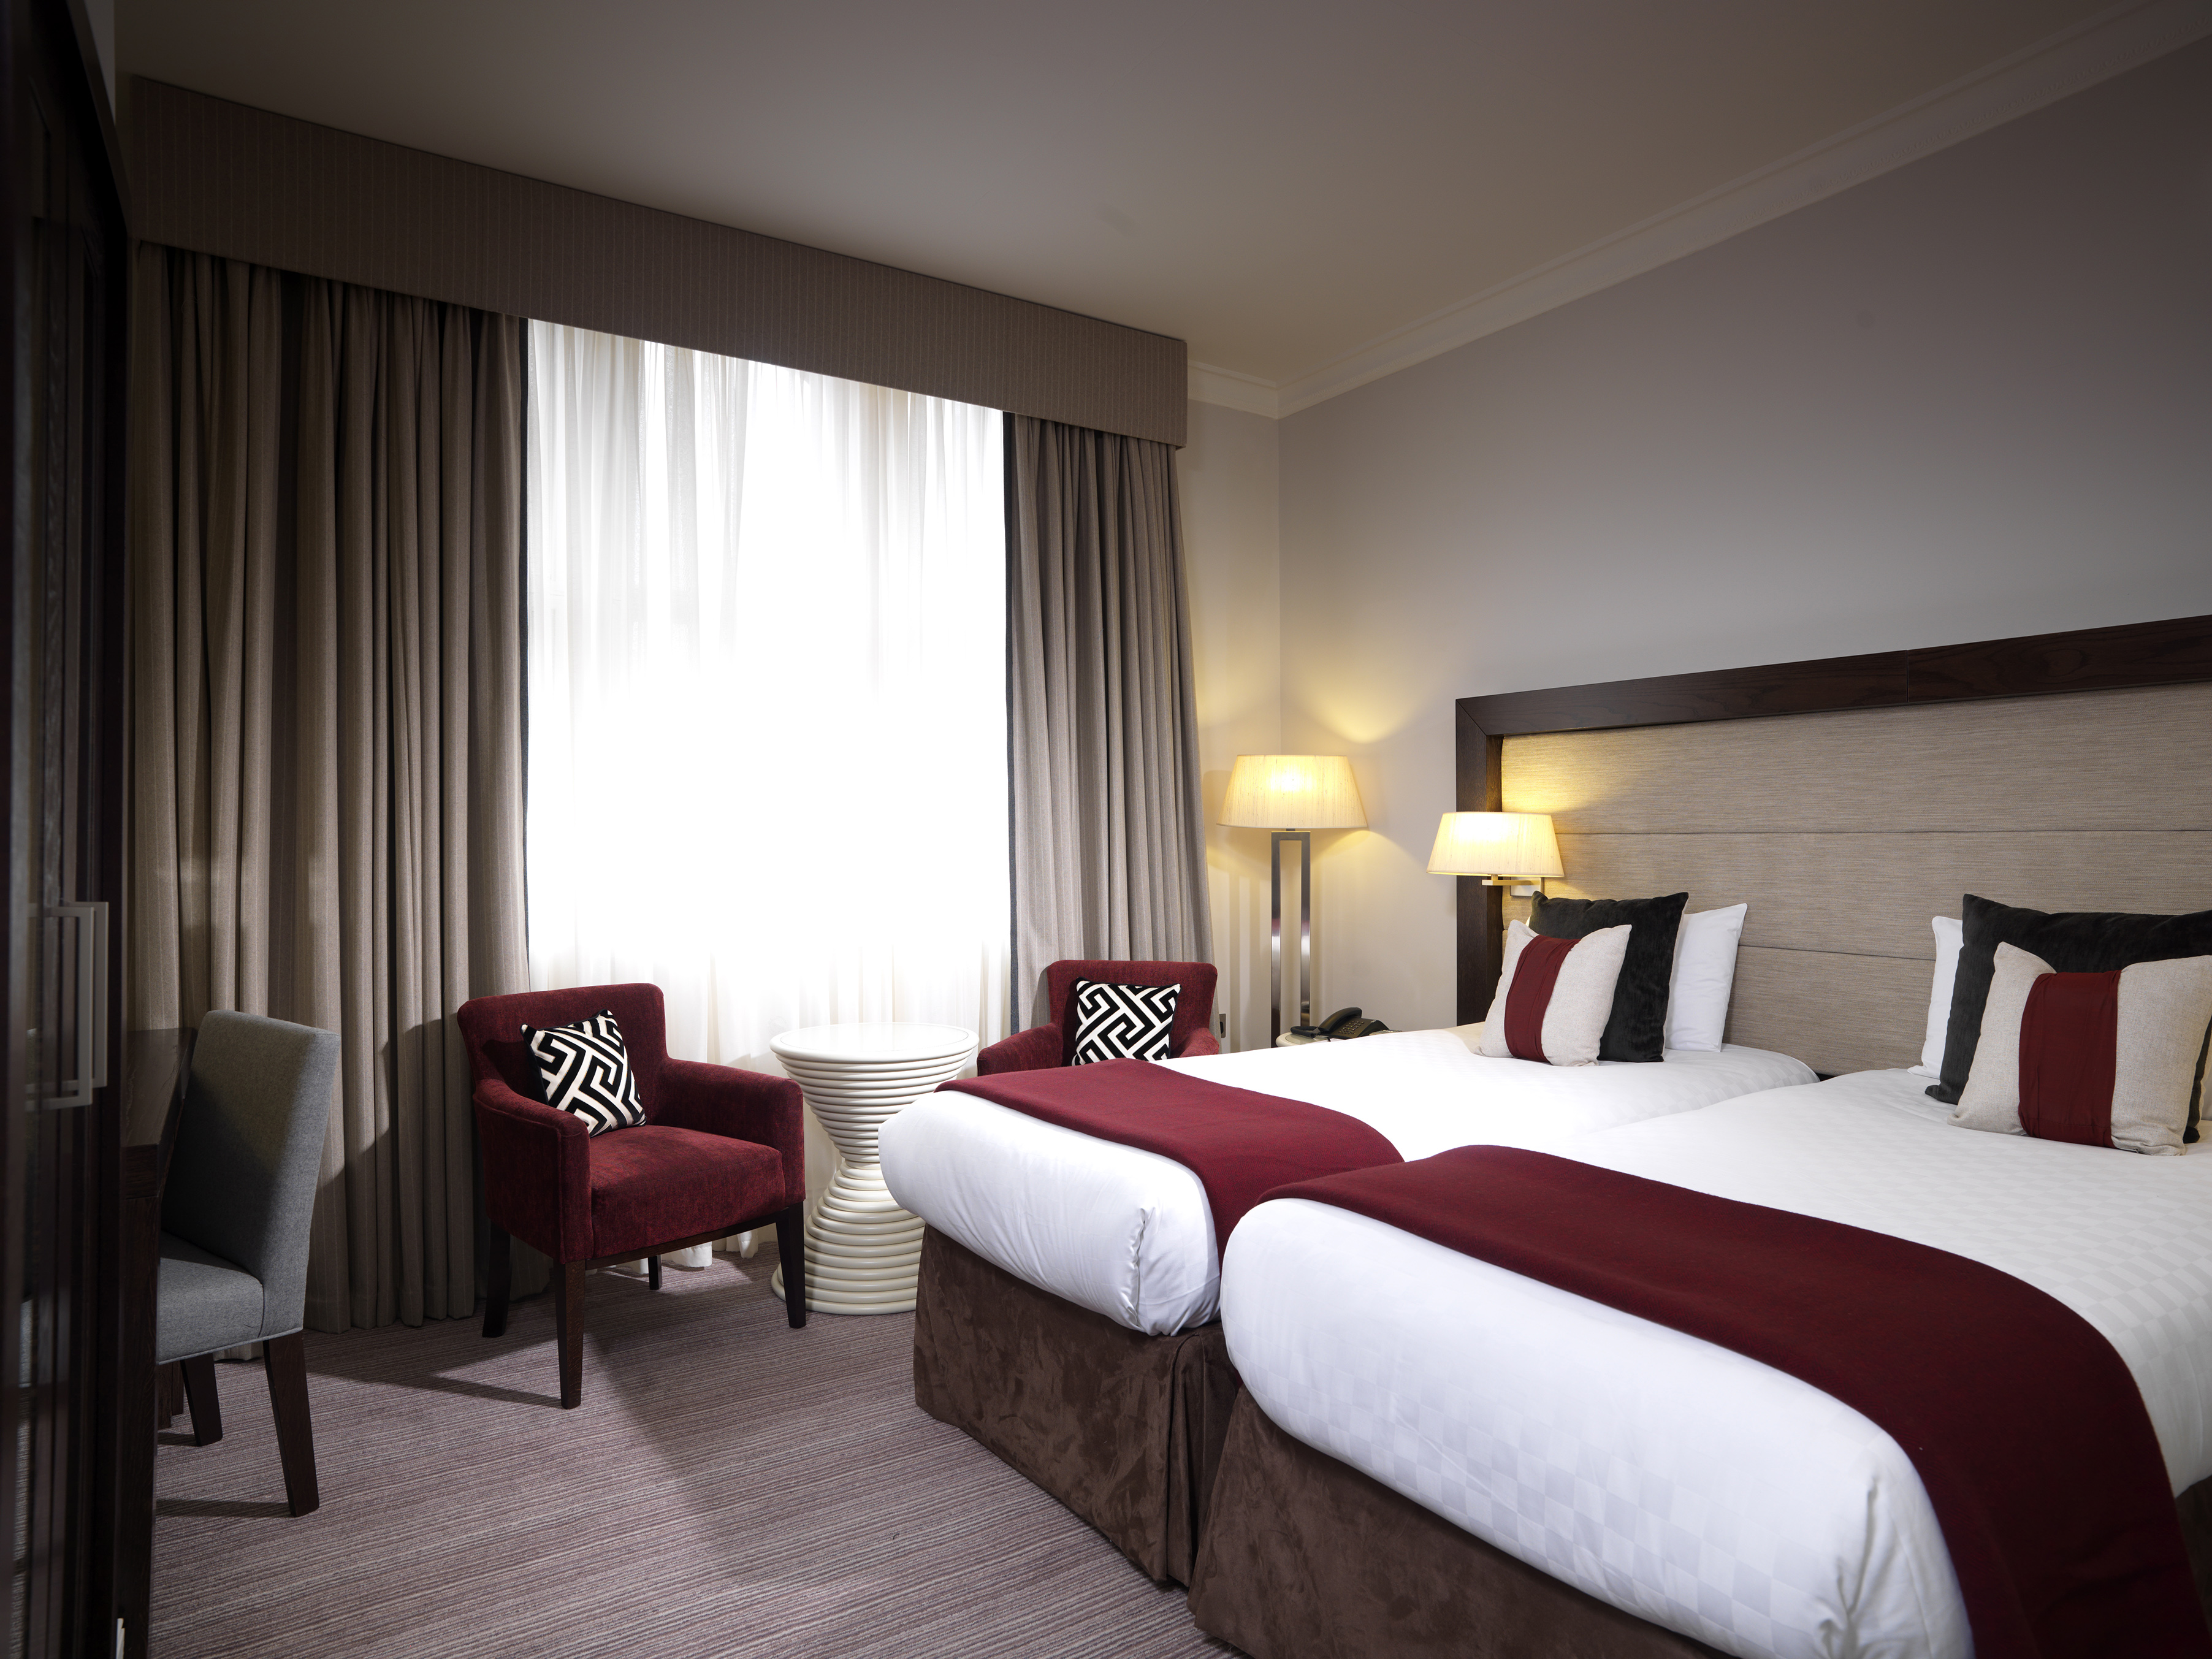 https://www.hotelsbyday.com/_data/default-hotel_image/0/4295/hi-h0bkr-27087802-thistle-london-hotel-bedrooms-deluxe-twin.jpg